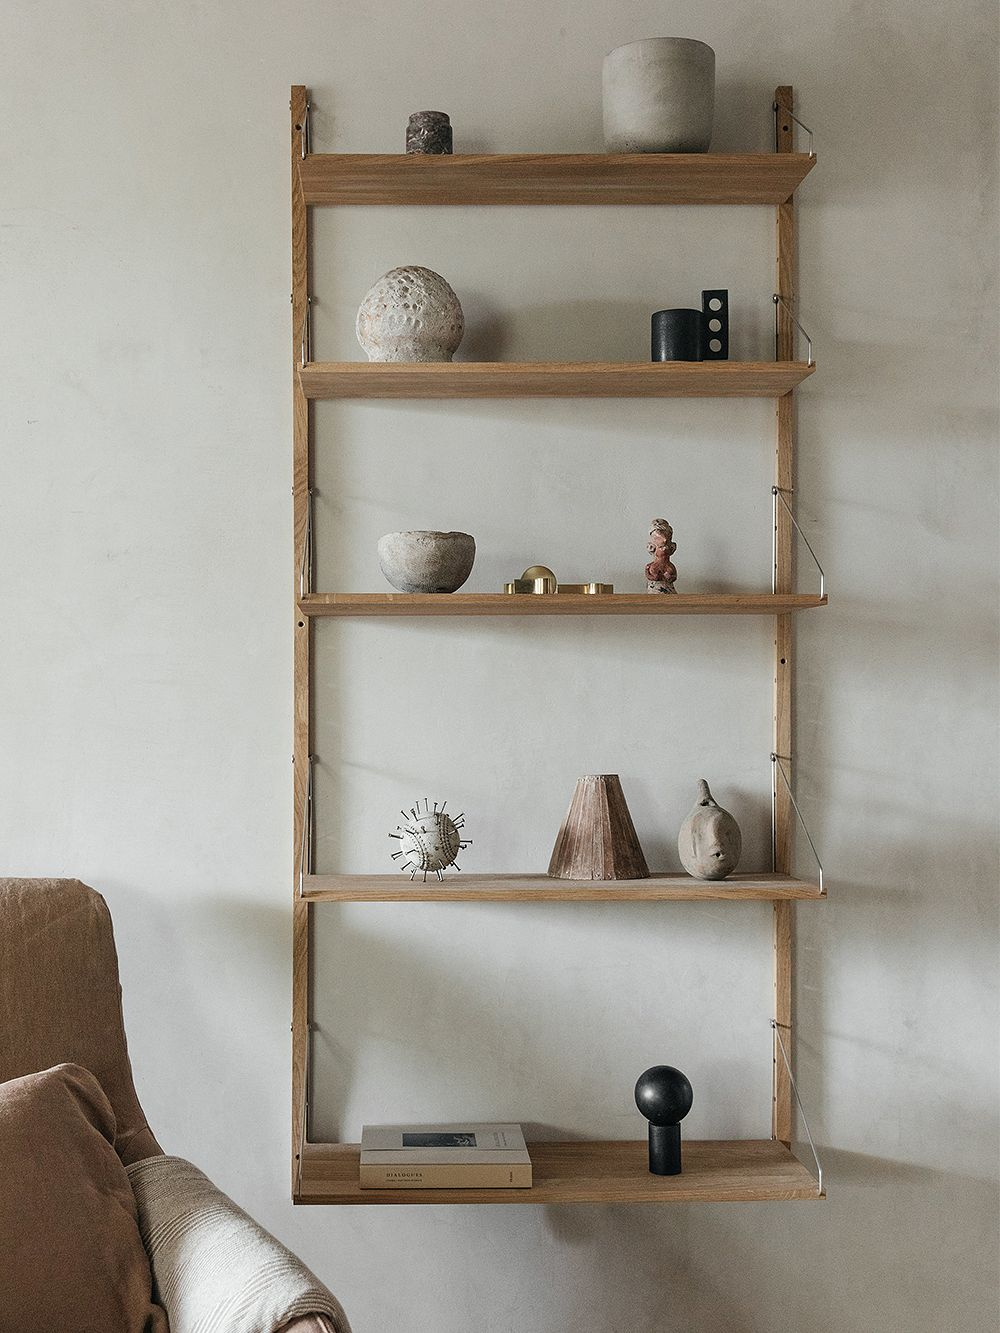 Frama's Shelf Library wall shelf